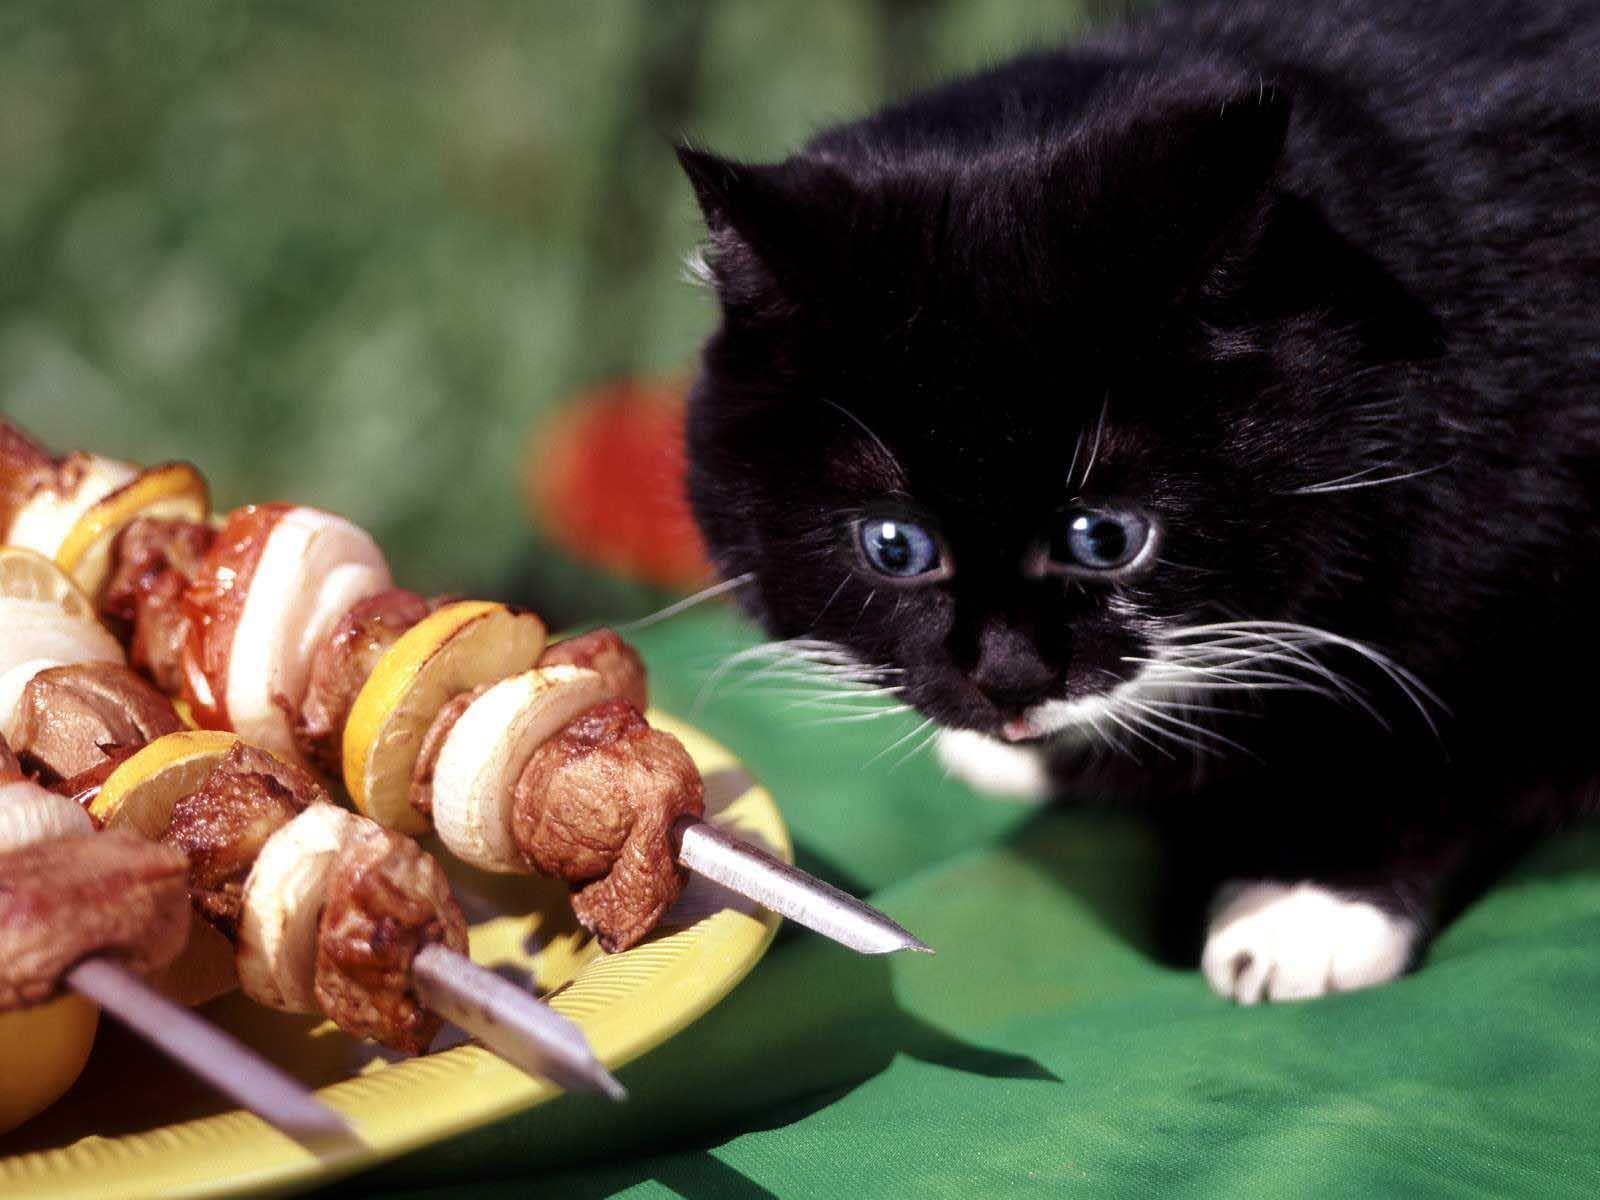 What is your warrior cat's favorite food?